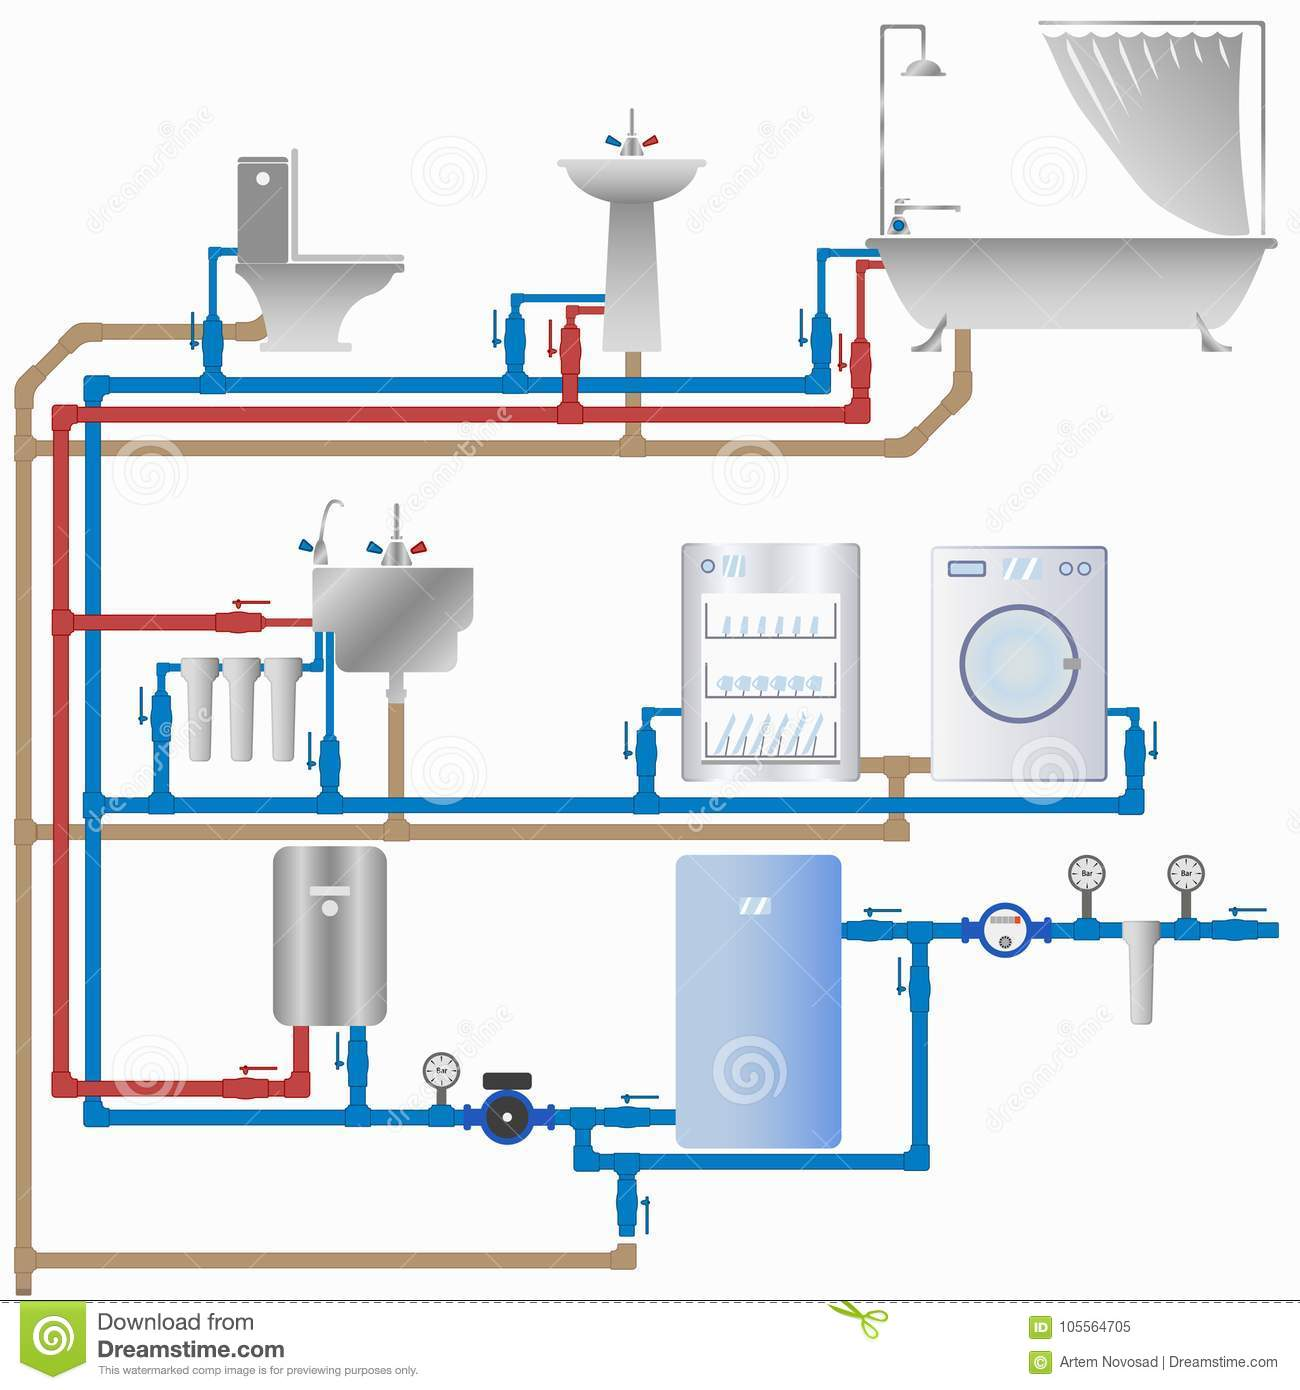 hight resolution of house water system diagram wiring diagram list wiring diagram as well water distribution system diagram on s plan